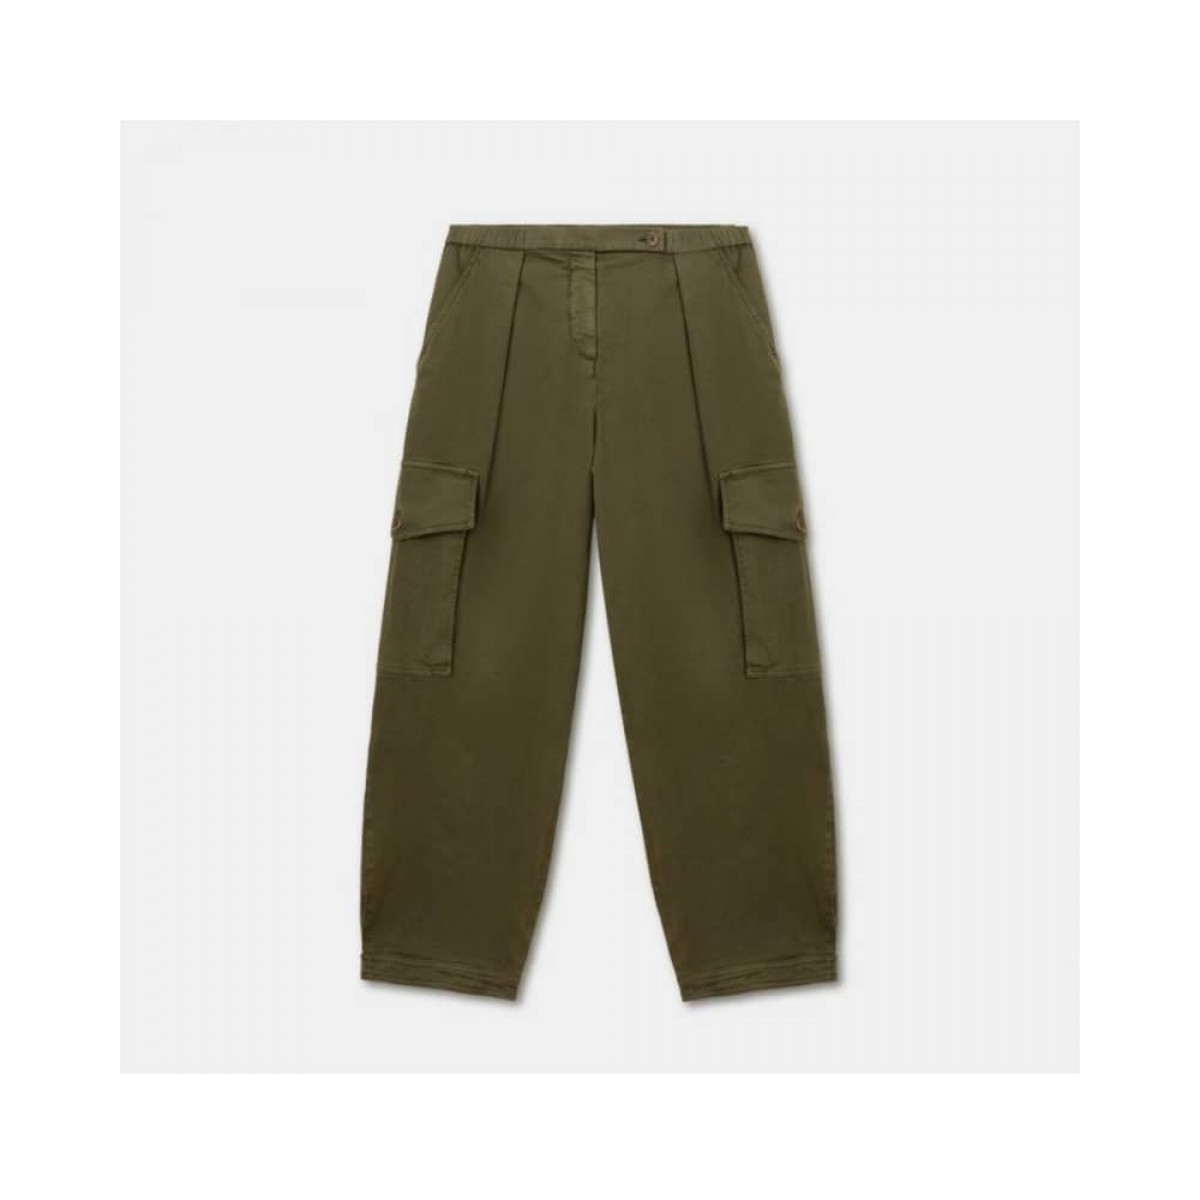 cargo pants - military - front